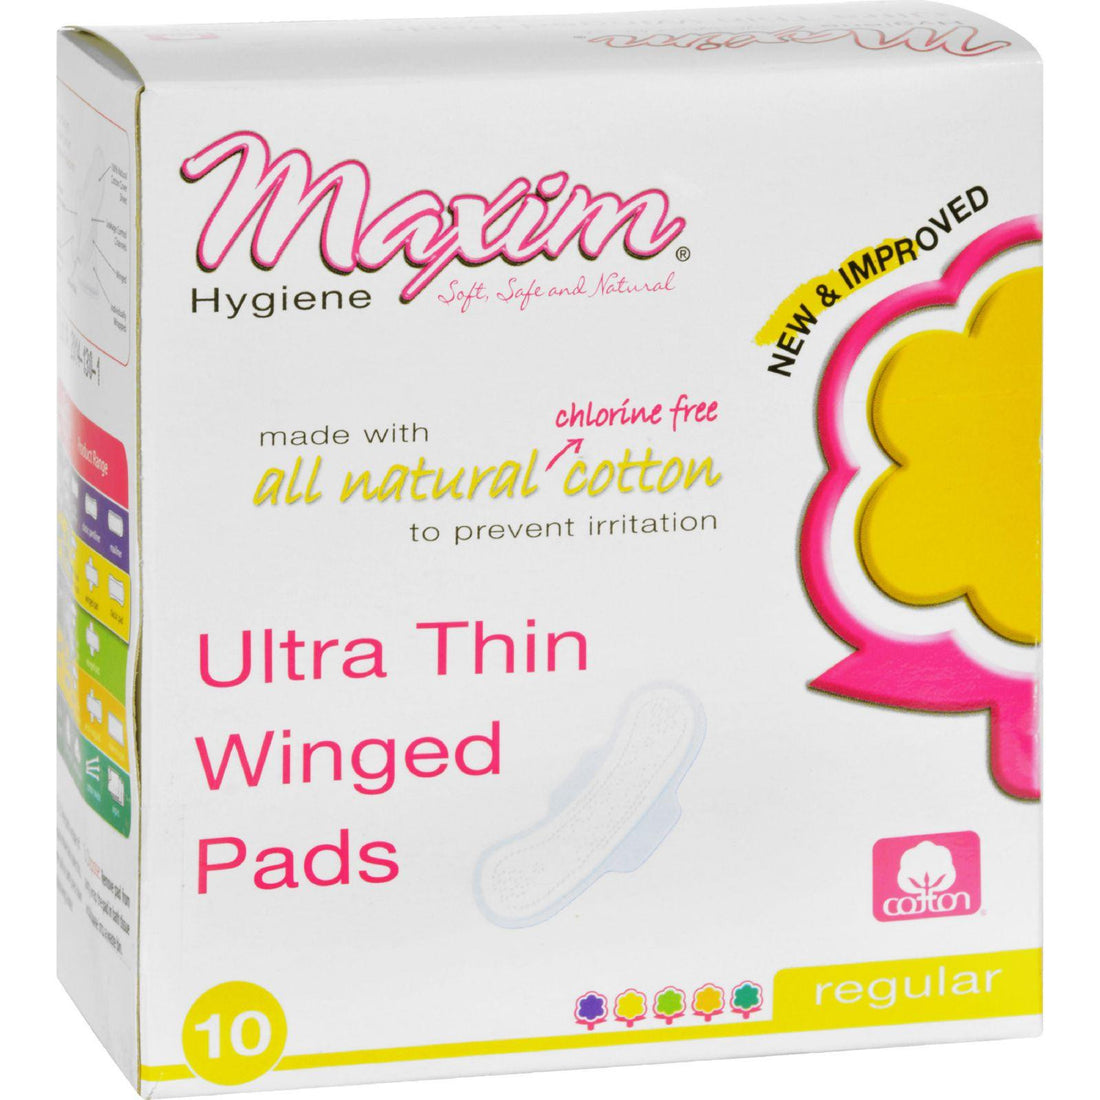 Mother Mantis: Maxim Hygiene Natural Cotton Ultra Thin Winged Pads Daytime - 10 Pads Maxim Hygiene Products